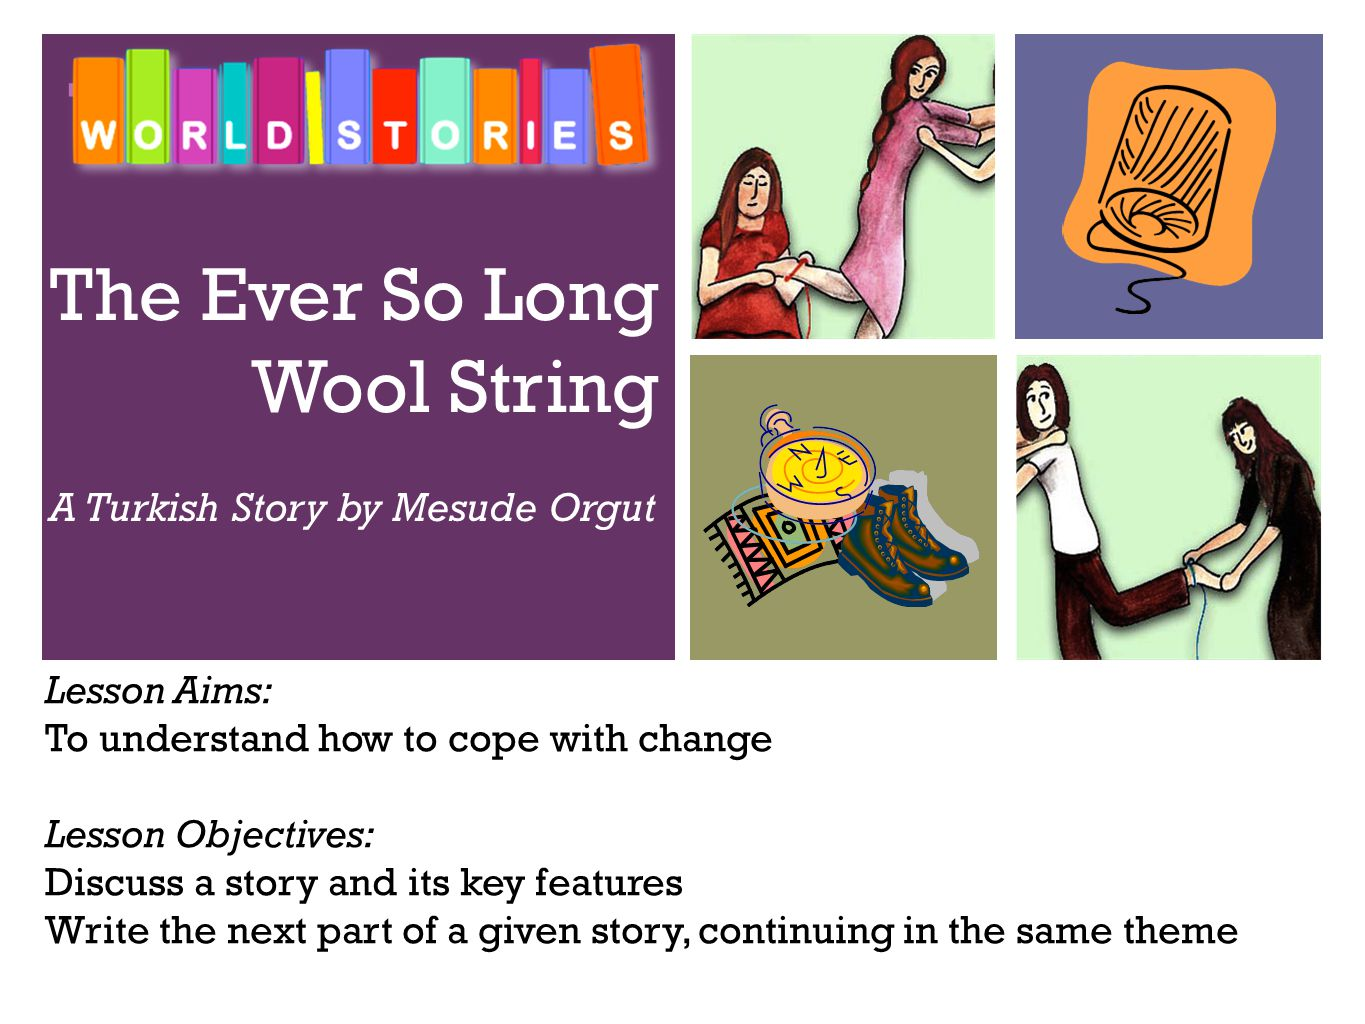 The Ever So Long Wool String